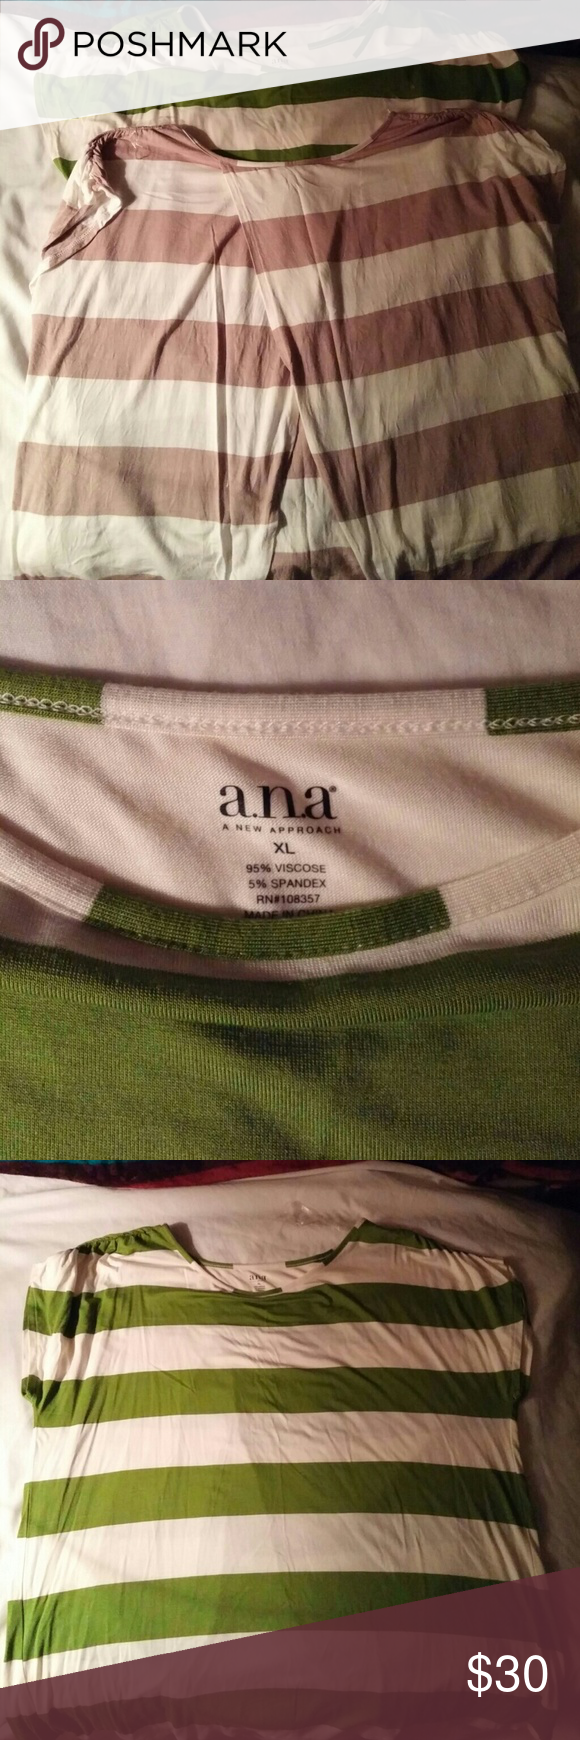 Open back shirt Set of 2 shirts with open back. Short to no sleeve. NWT GREEN one only.. Tan shirt wore once.. Both are in mint condition. Ana Tops